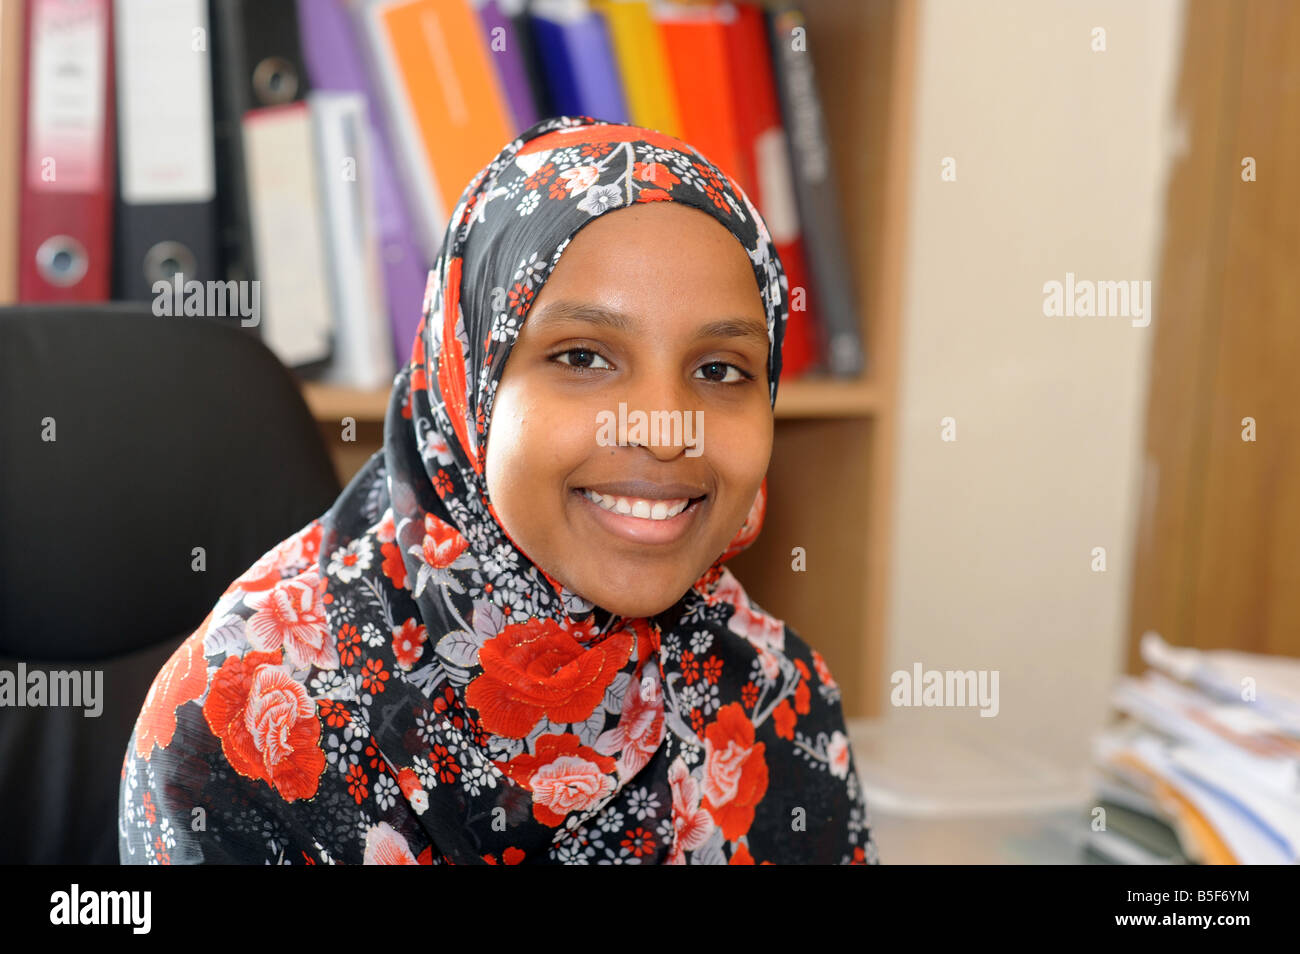 A portrait of a young Somalian Refugee working in a clerical job, Bolton - Stock Image